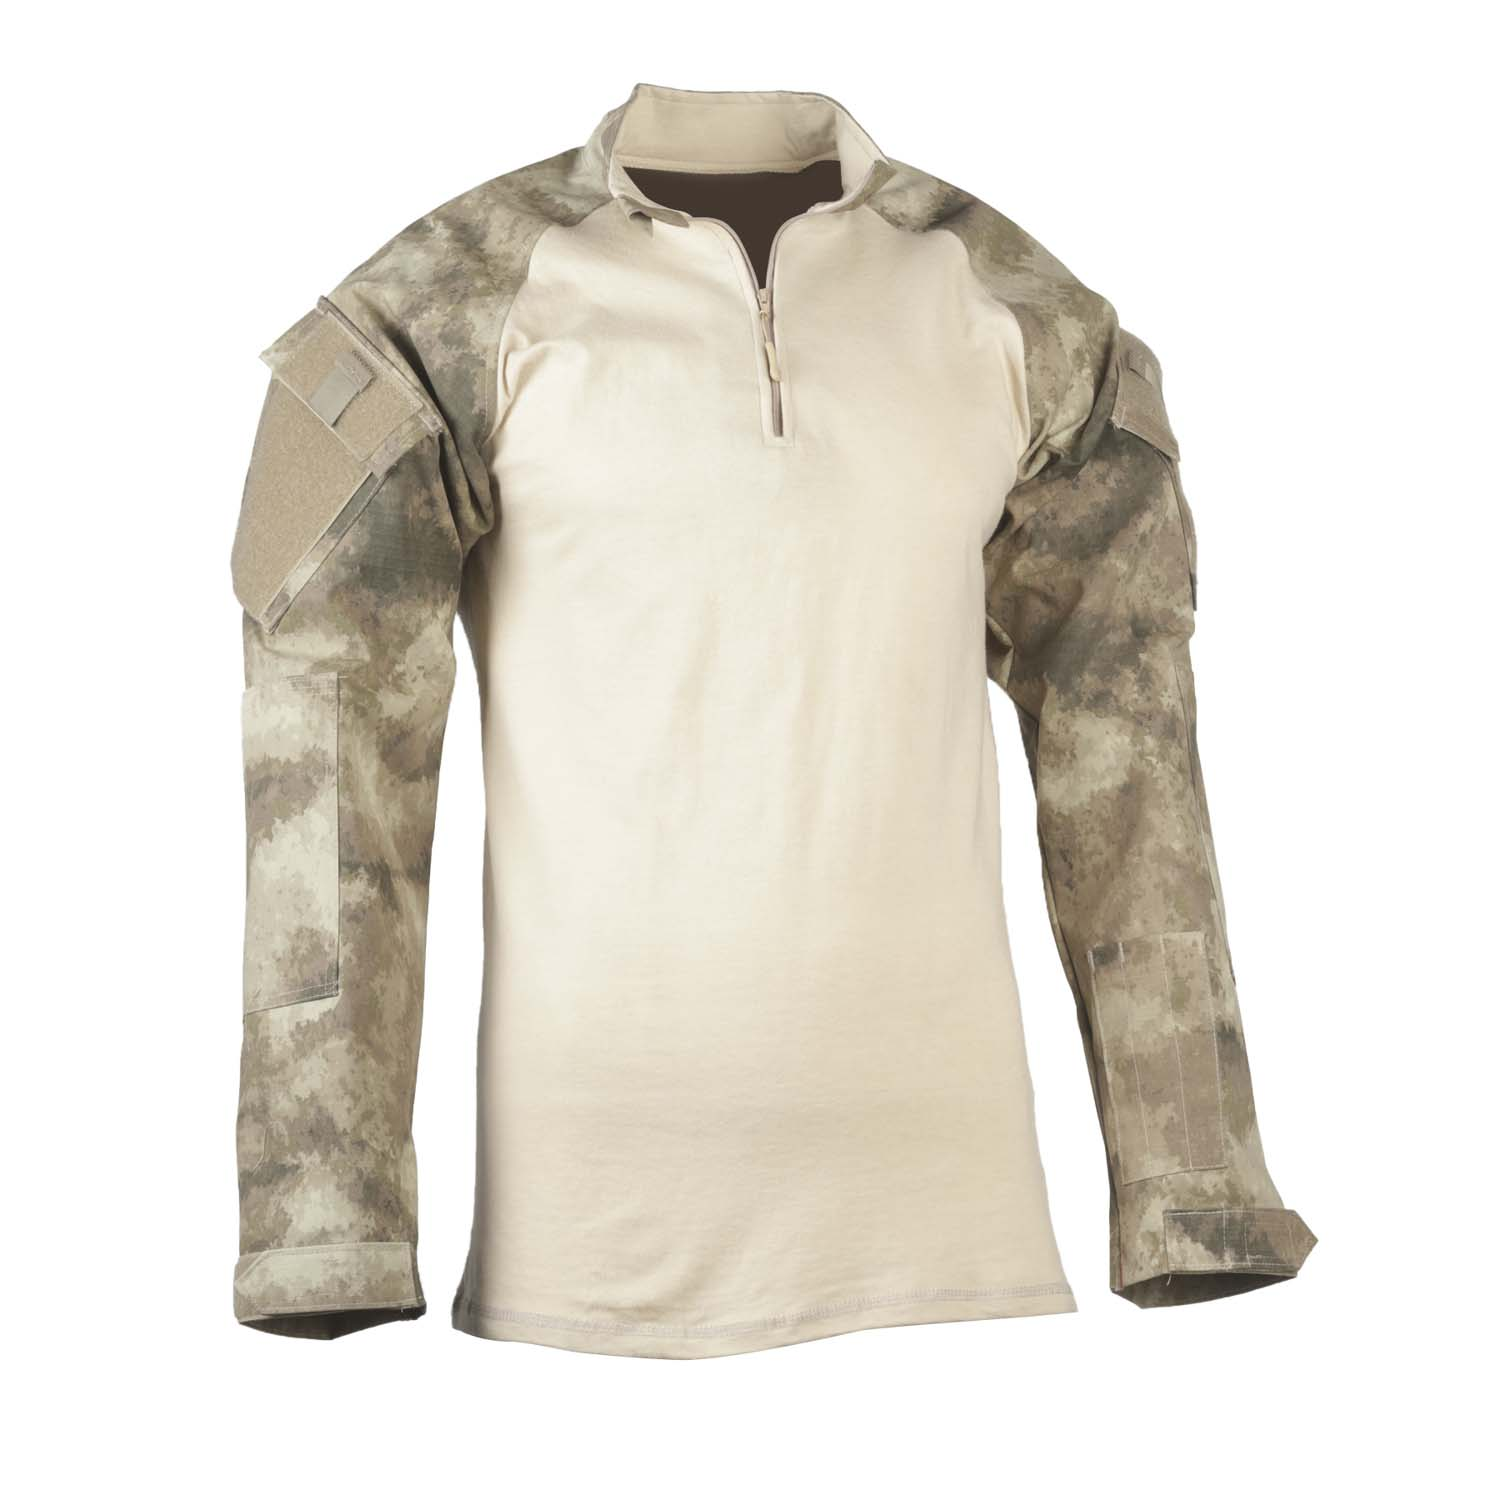 50/50 CORDURA NYLON COTTON RIP 1/4 ZIP COMBAT SHIRT